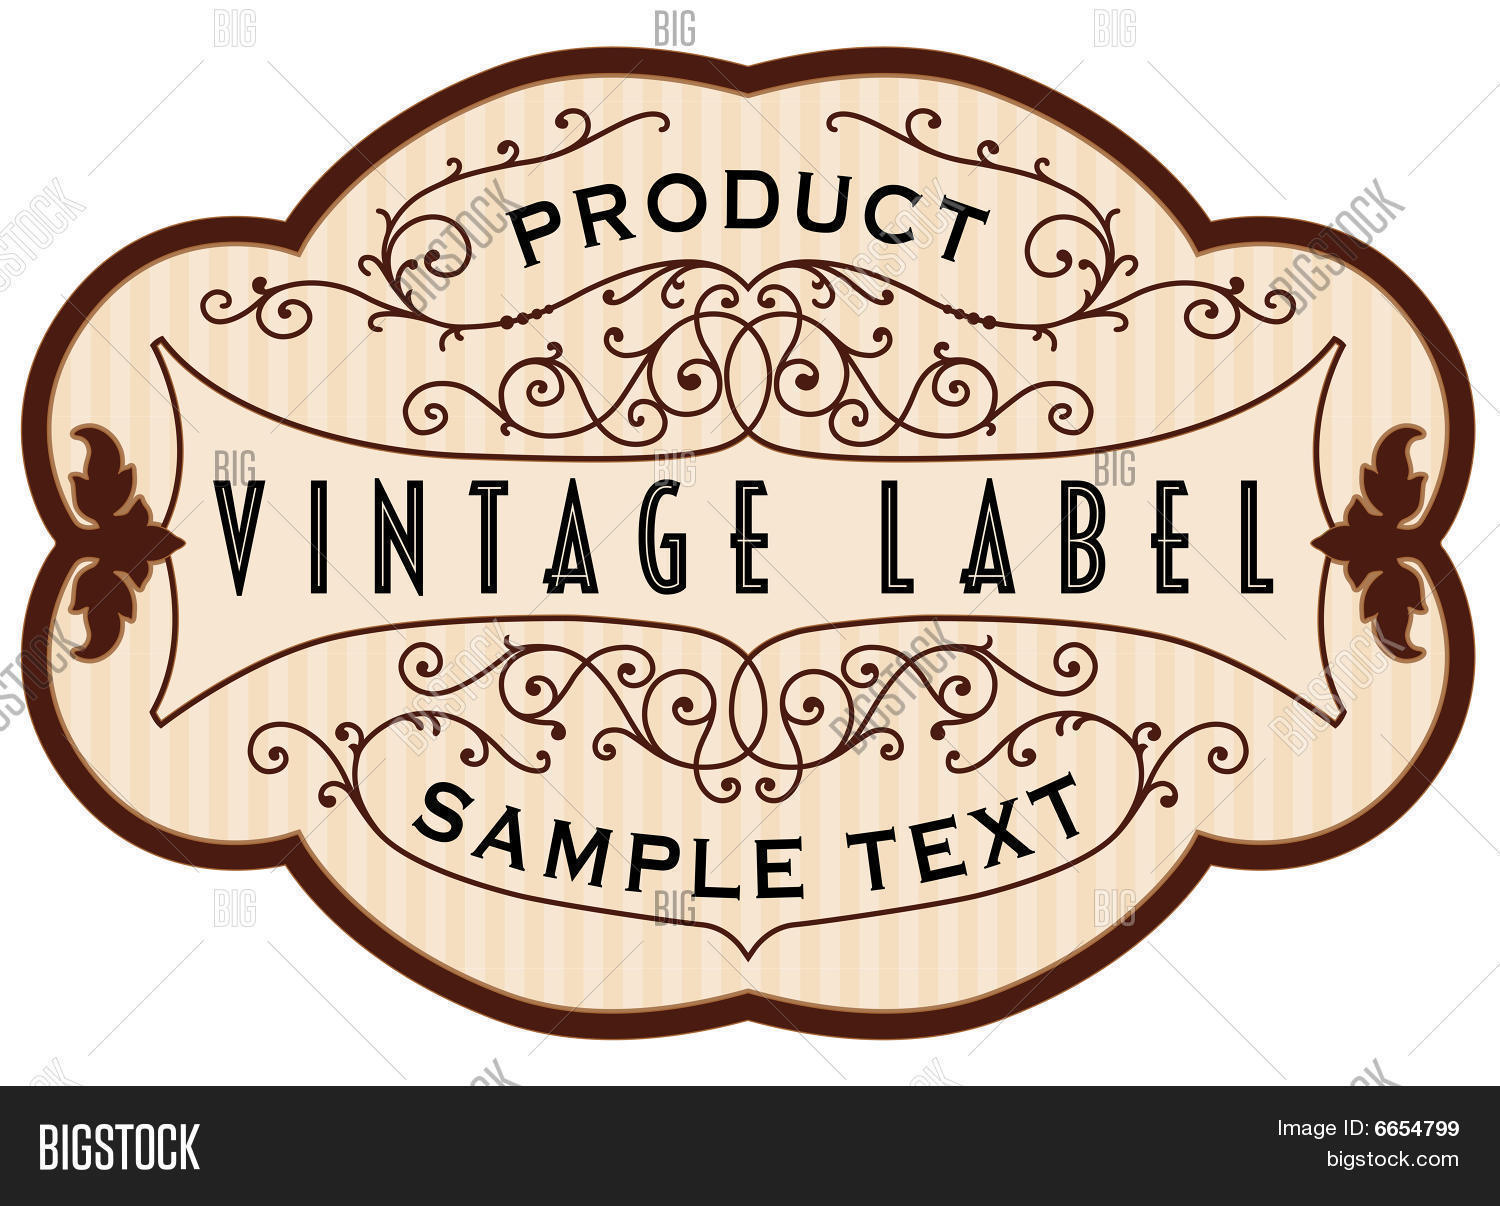 Vintage Label  Large Label Template